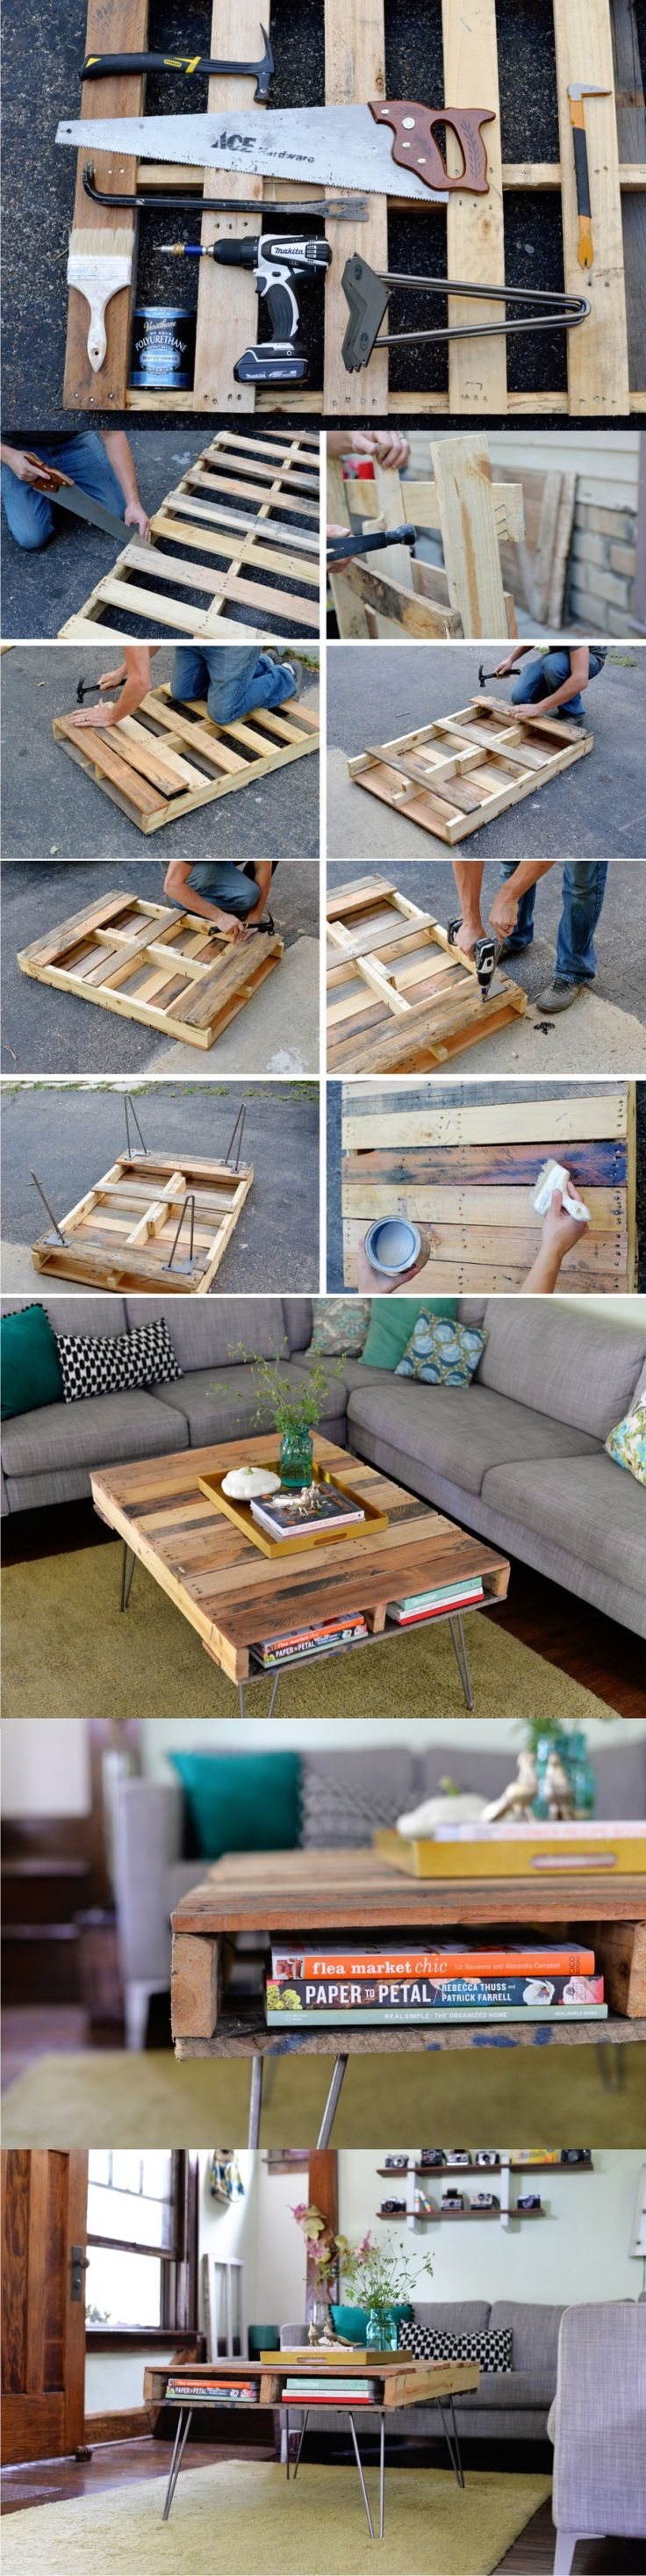 Si vous ne savez pas ou commencer ! Mesa reutilizando un palé / Via www.homedit.com ♪ ♪ ... #inspiration #diy GB http://www.pinterest.com/gigibrazil/boards/